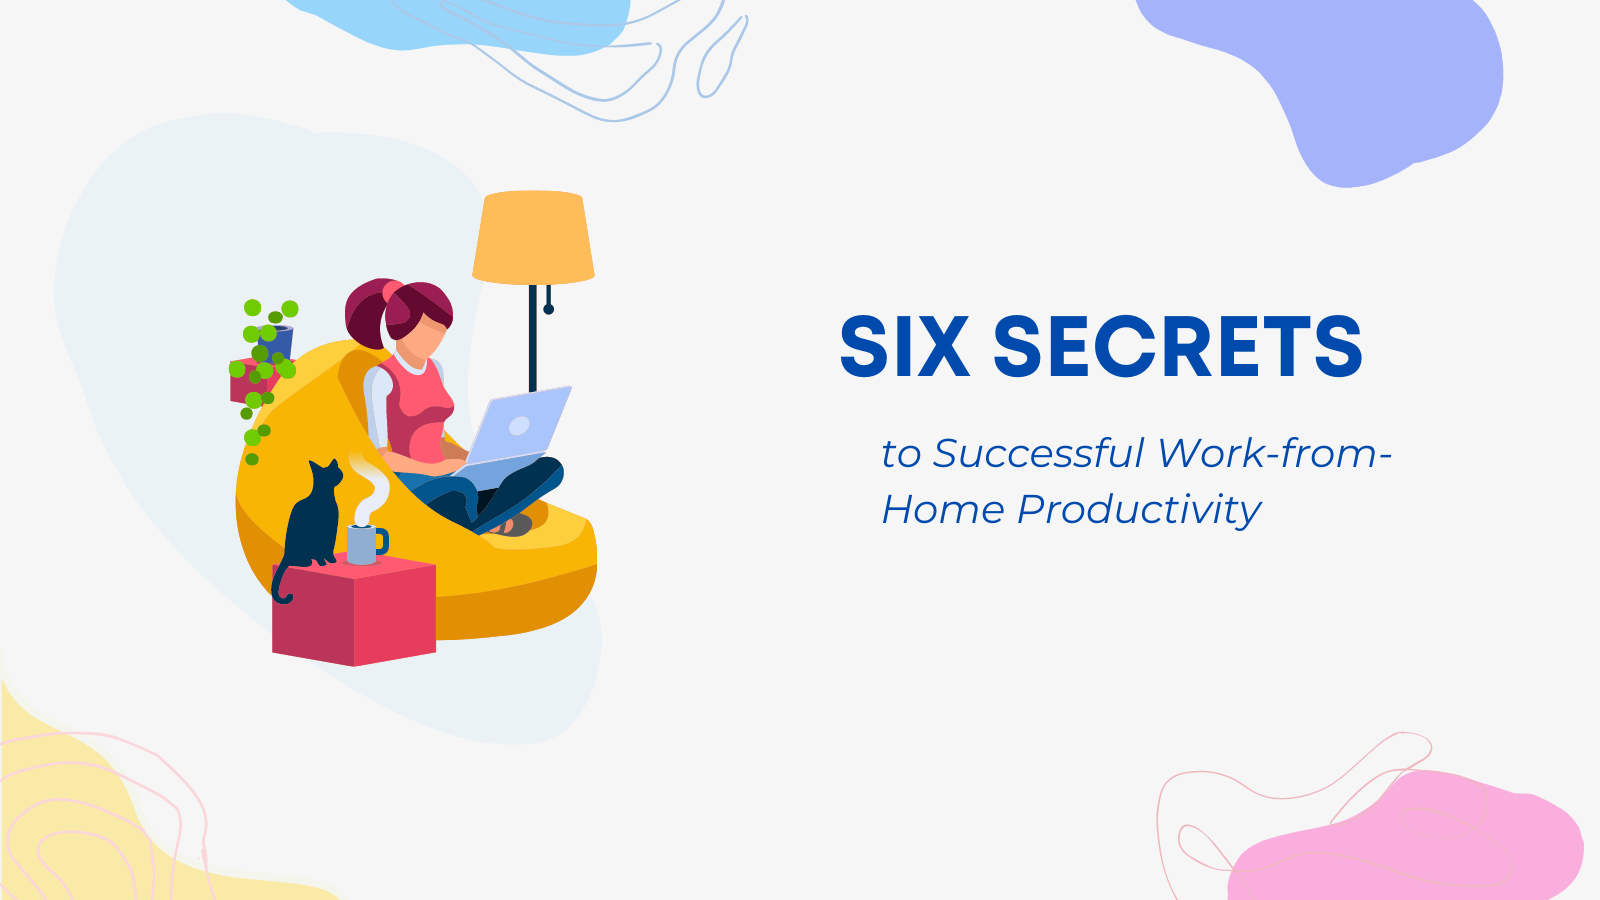 Six Secrets to Successful Work-from-Home Productivity